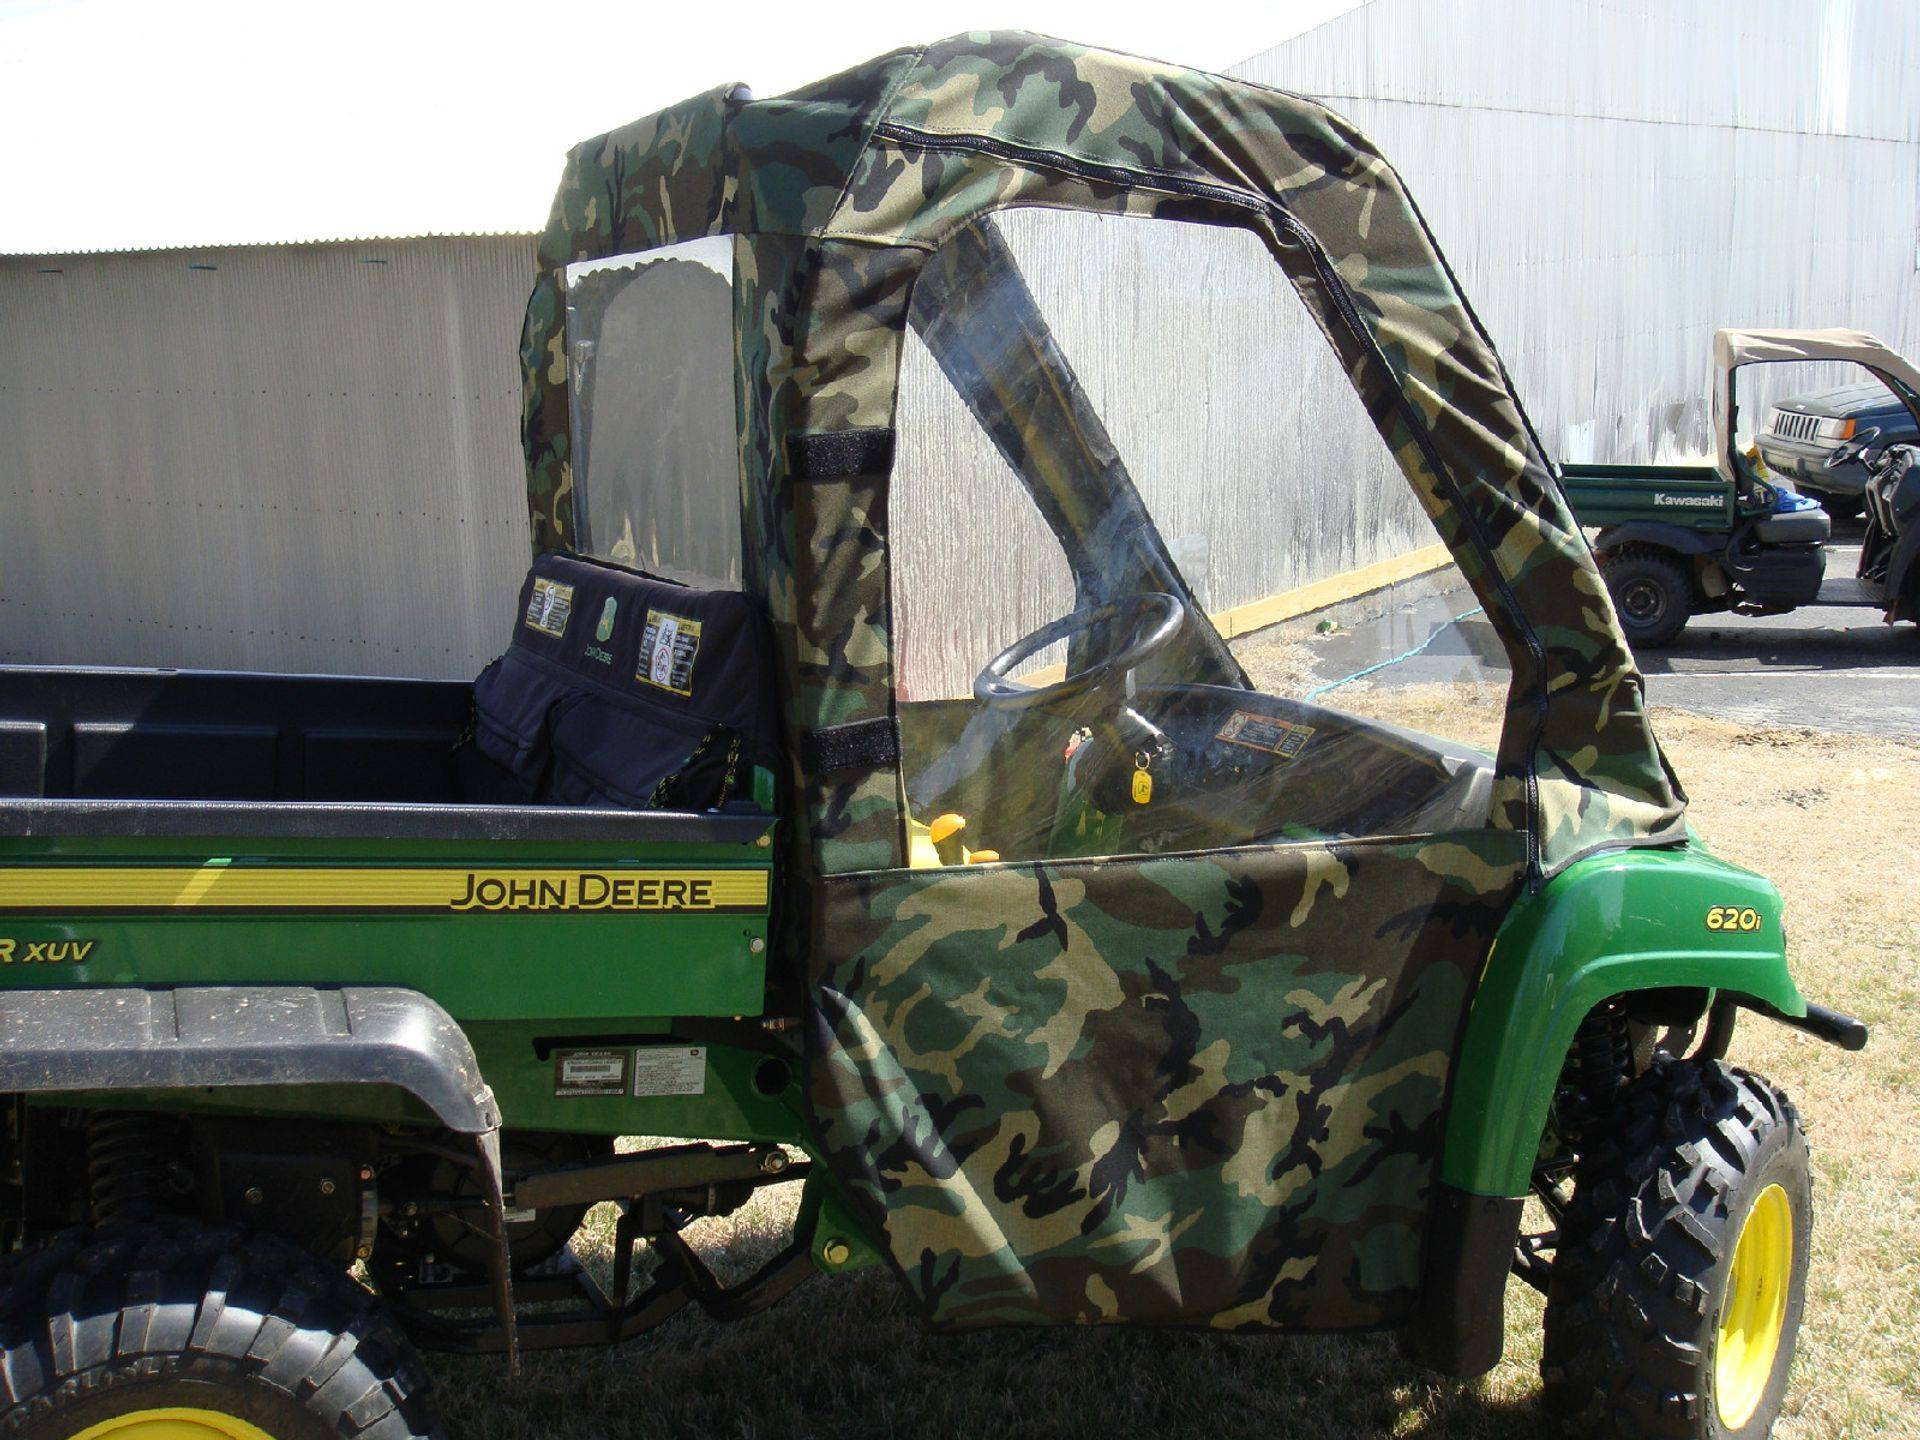 john deere gator hpx xuv doors. Black Bedroom Furniture Sets. Home Design Ideas